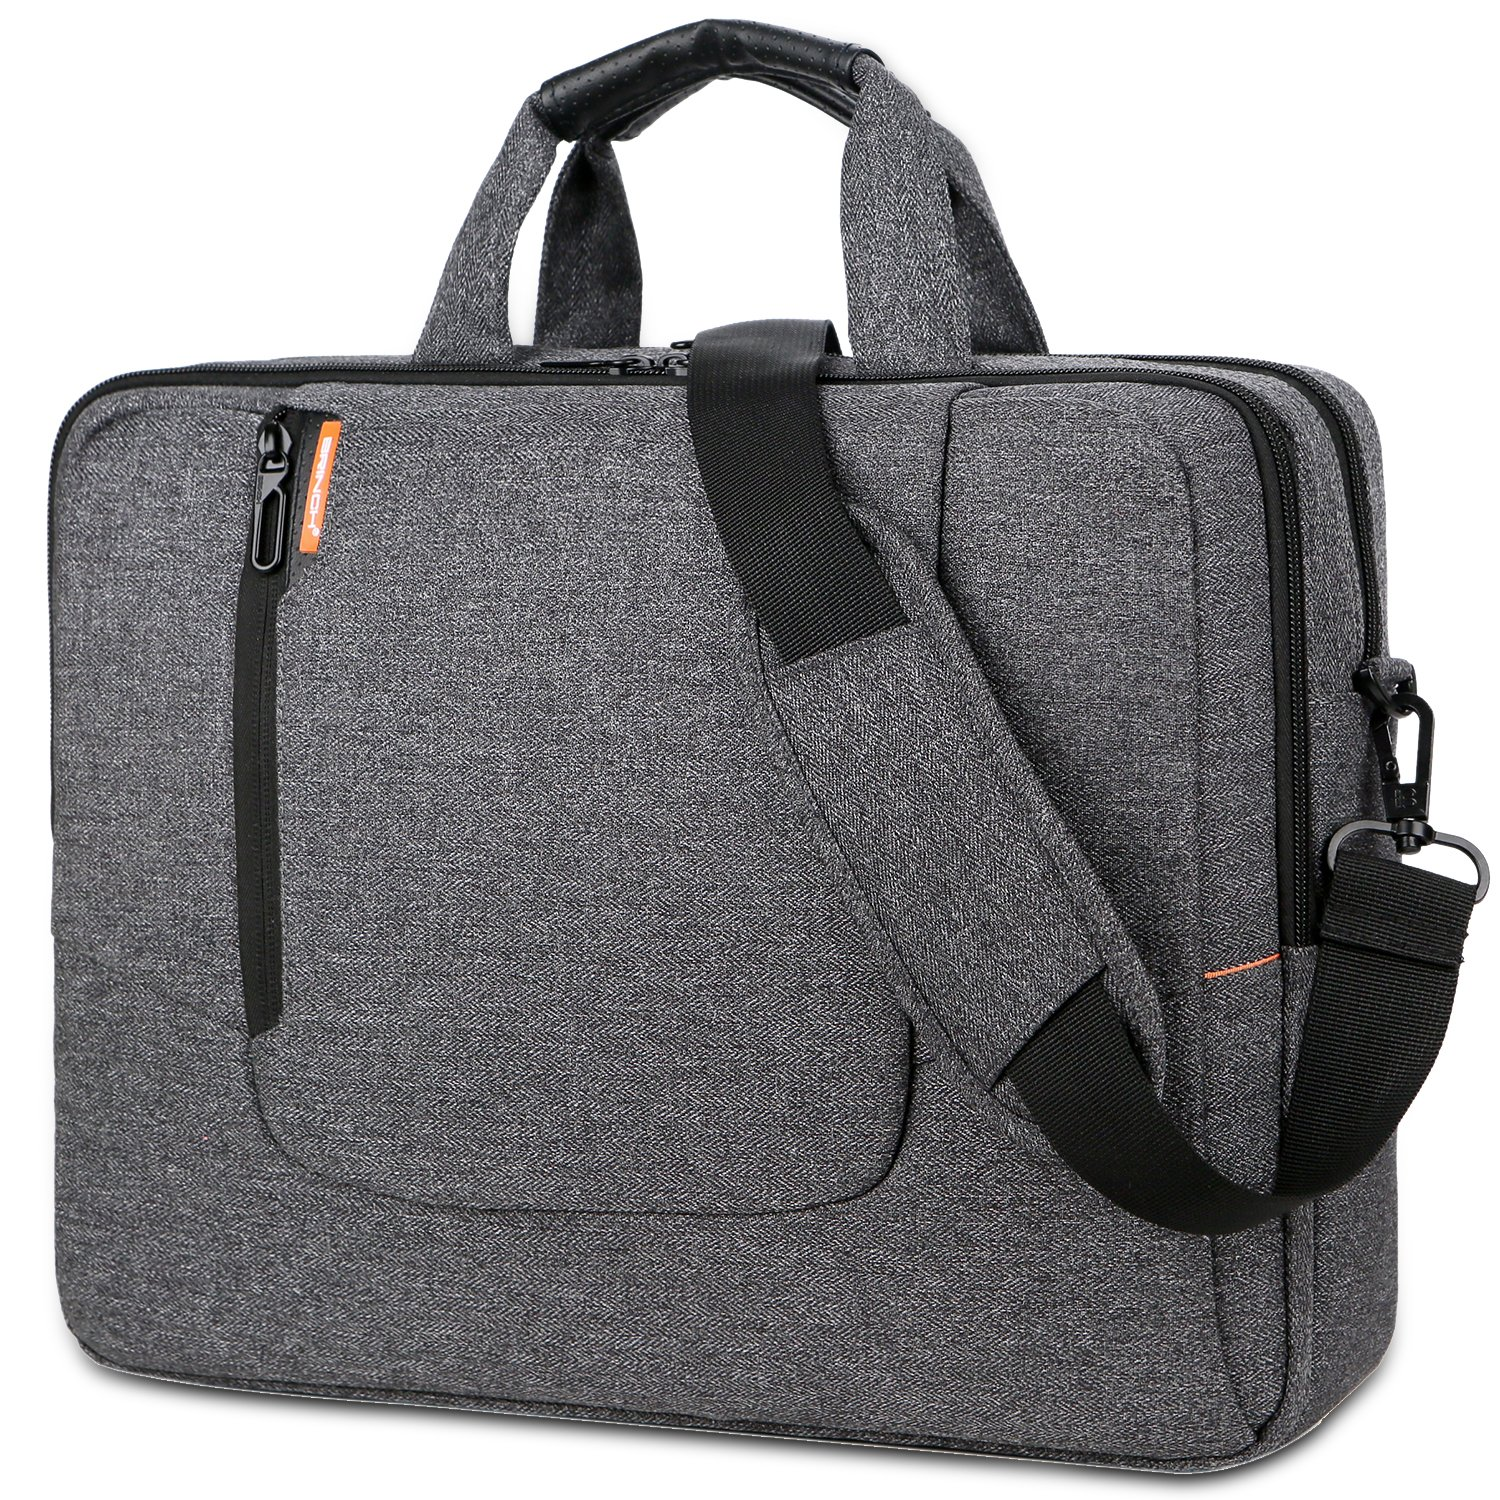 Amazon.com: BRINCH 15.6 Inch Laptop Bag Large